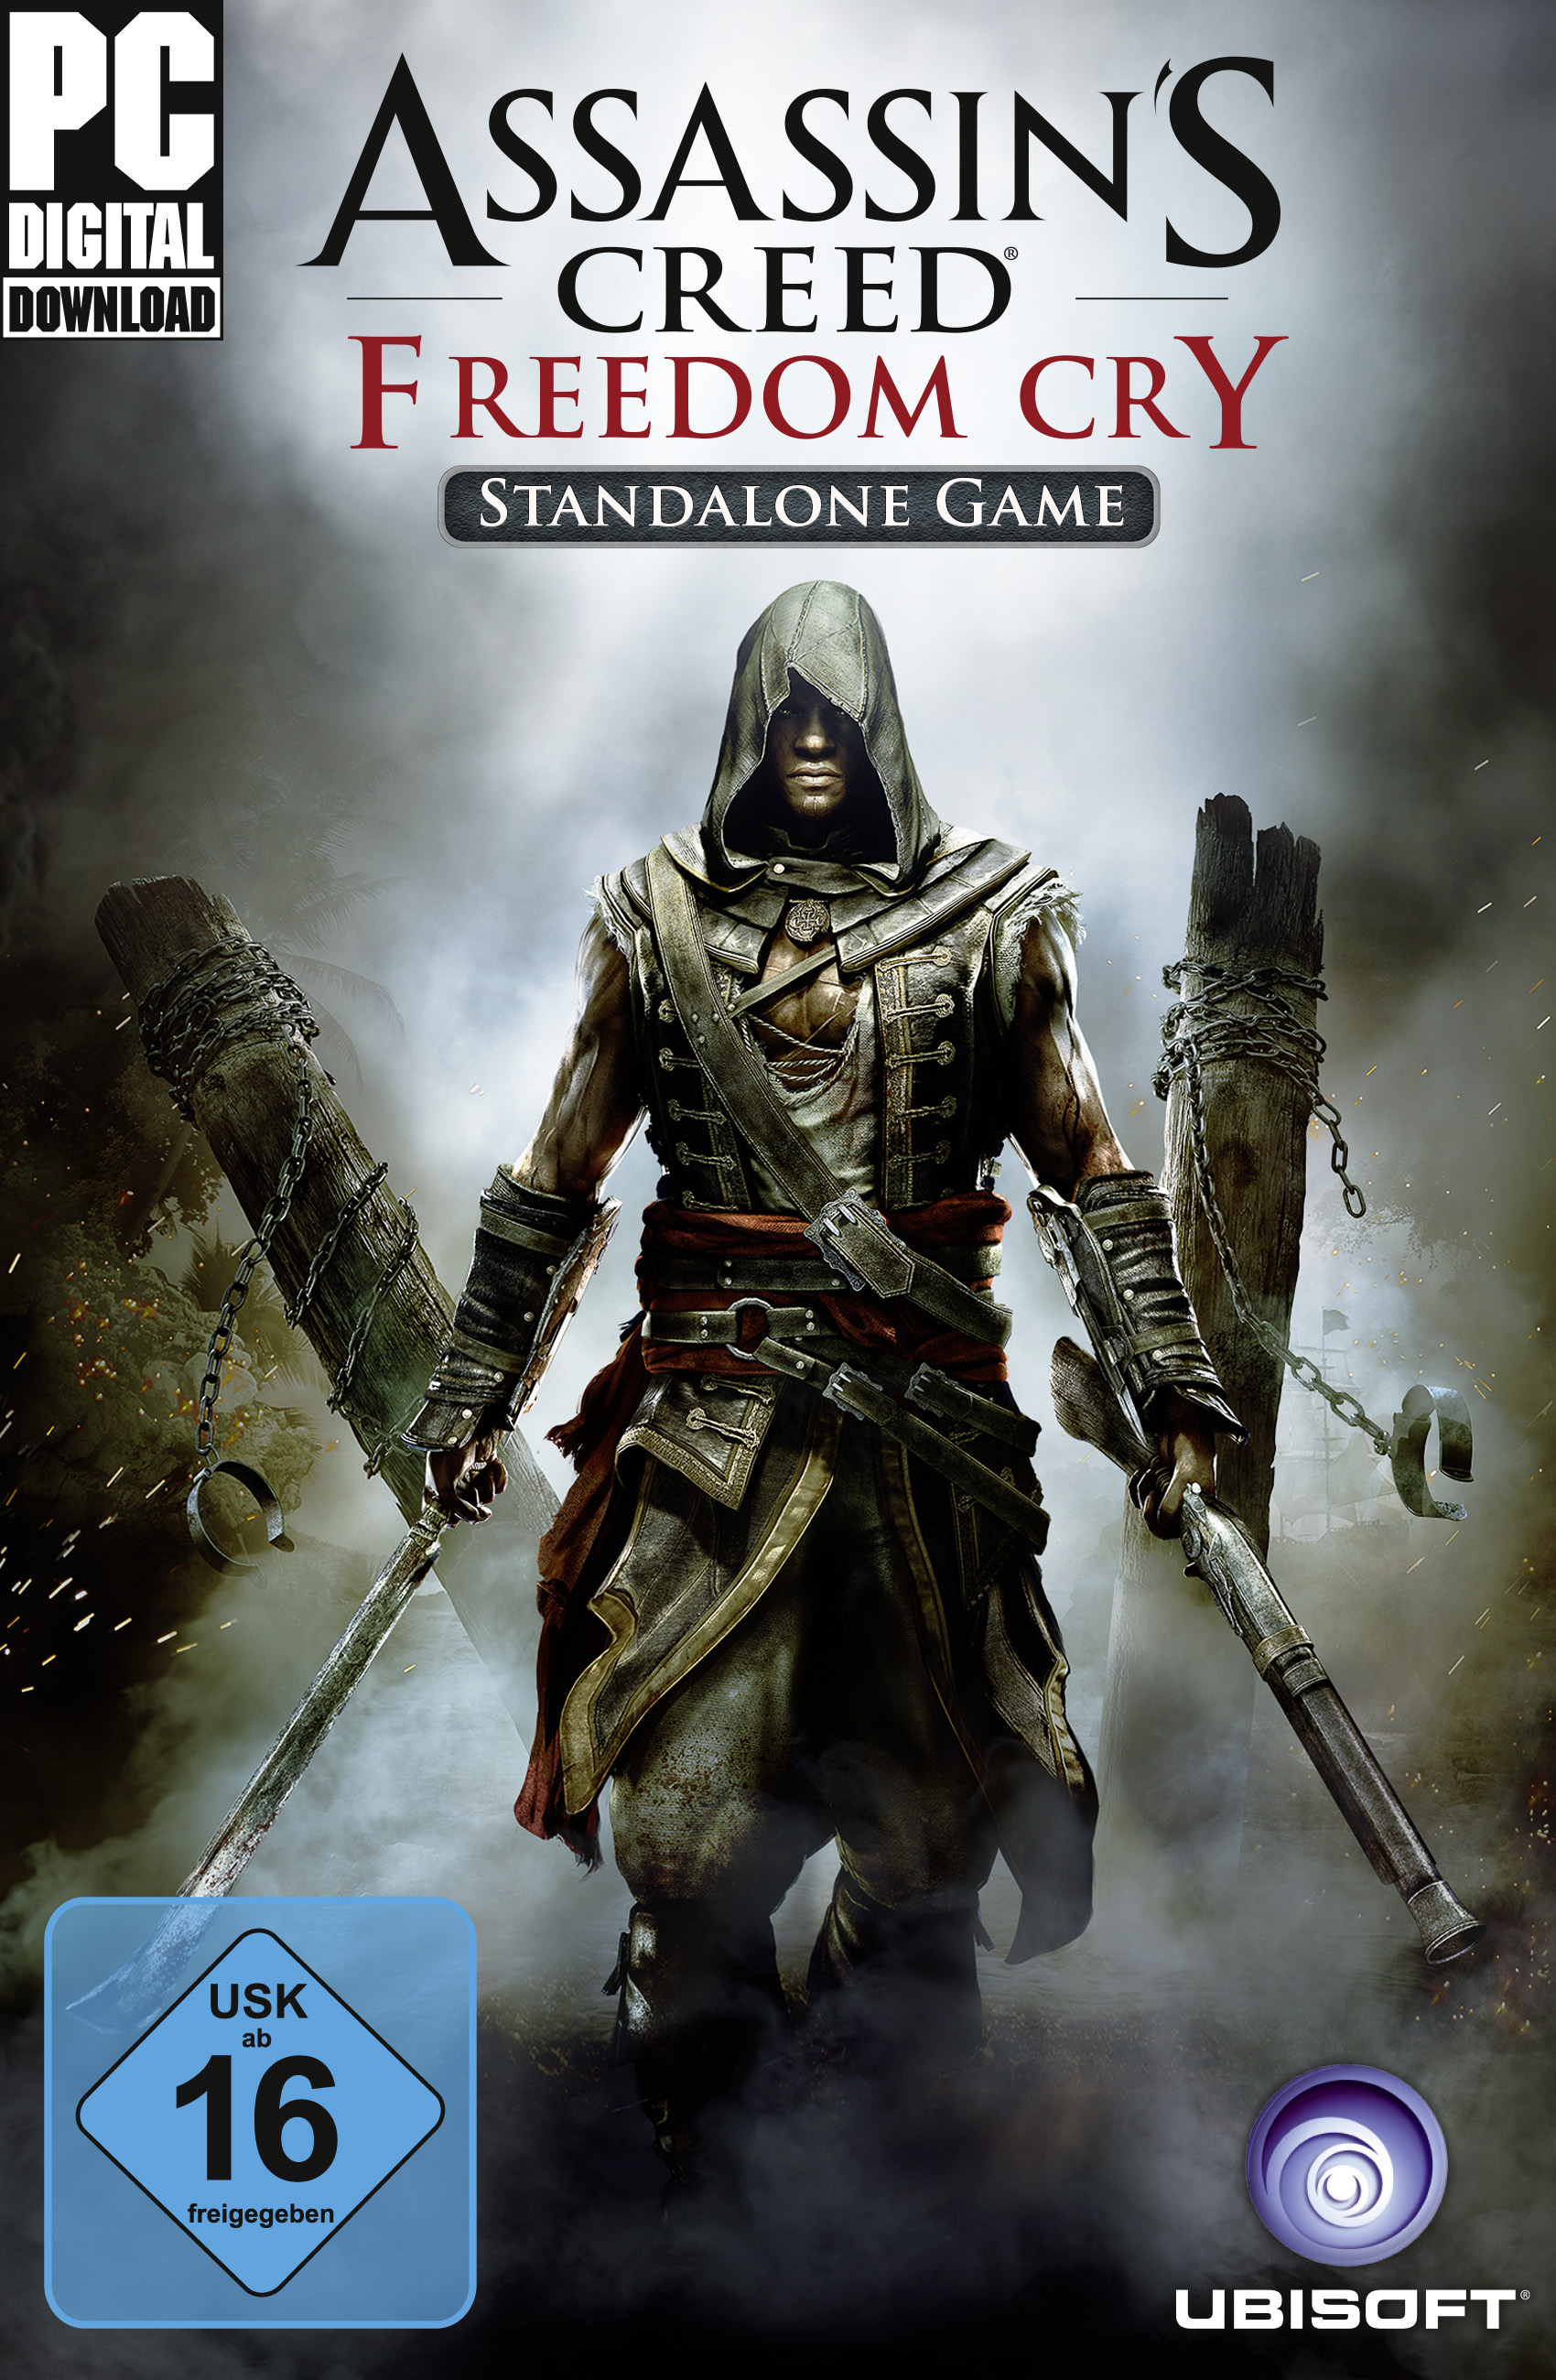 Assassins Creed: Freedom Cry